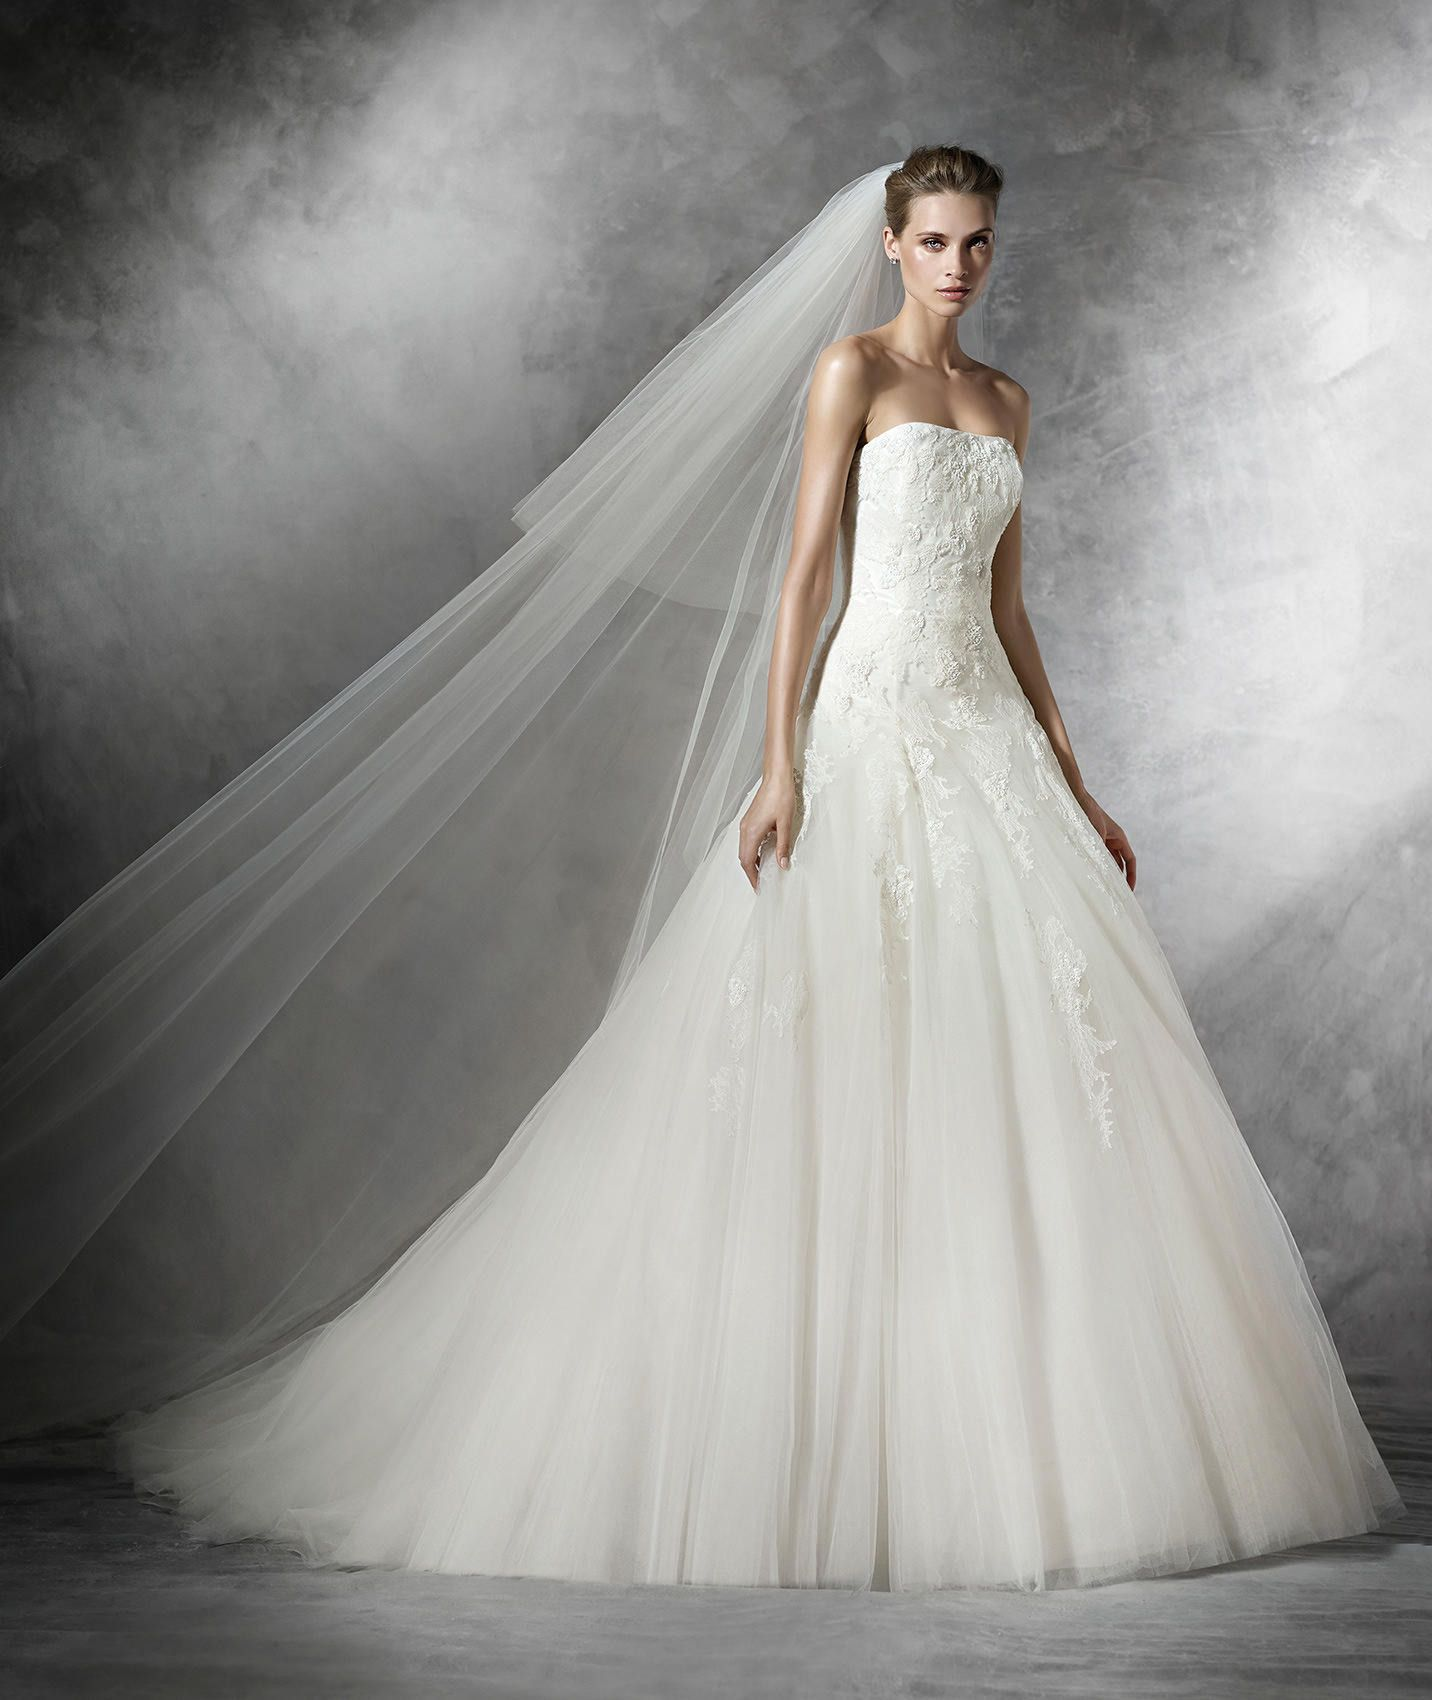 A fairy tale wedding dress. Chantilly lace over tulle princess gown ...